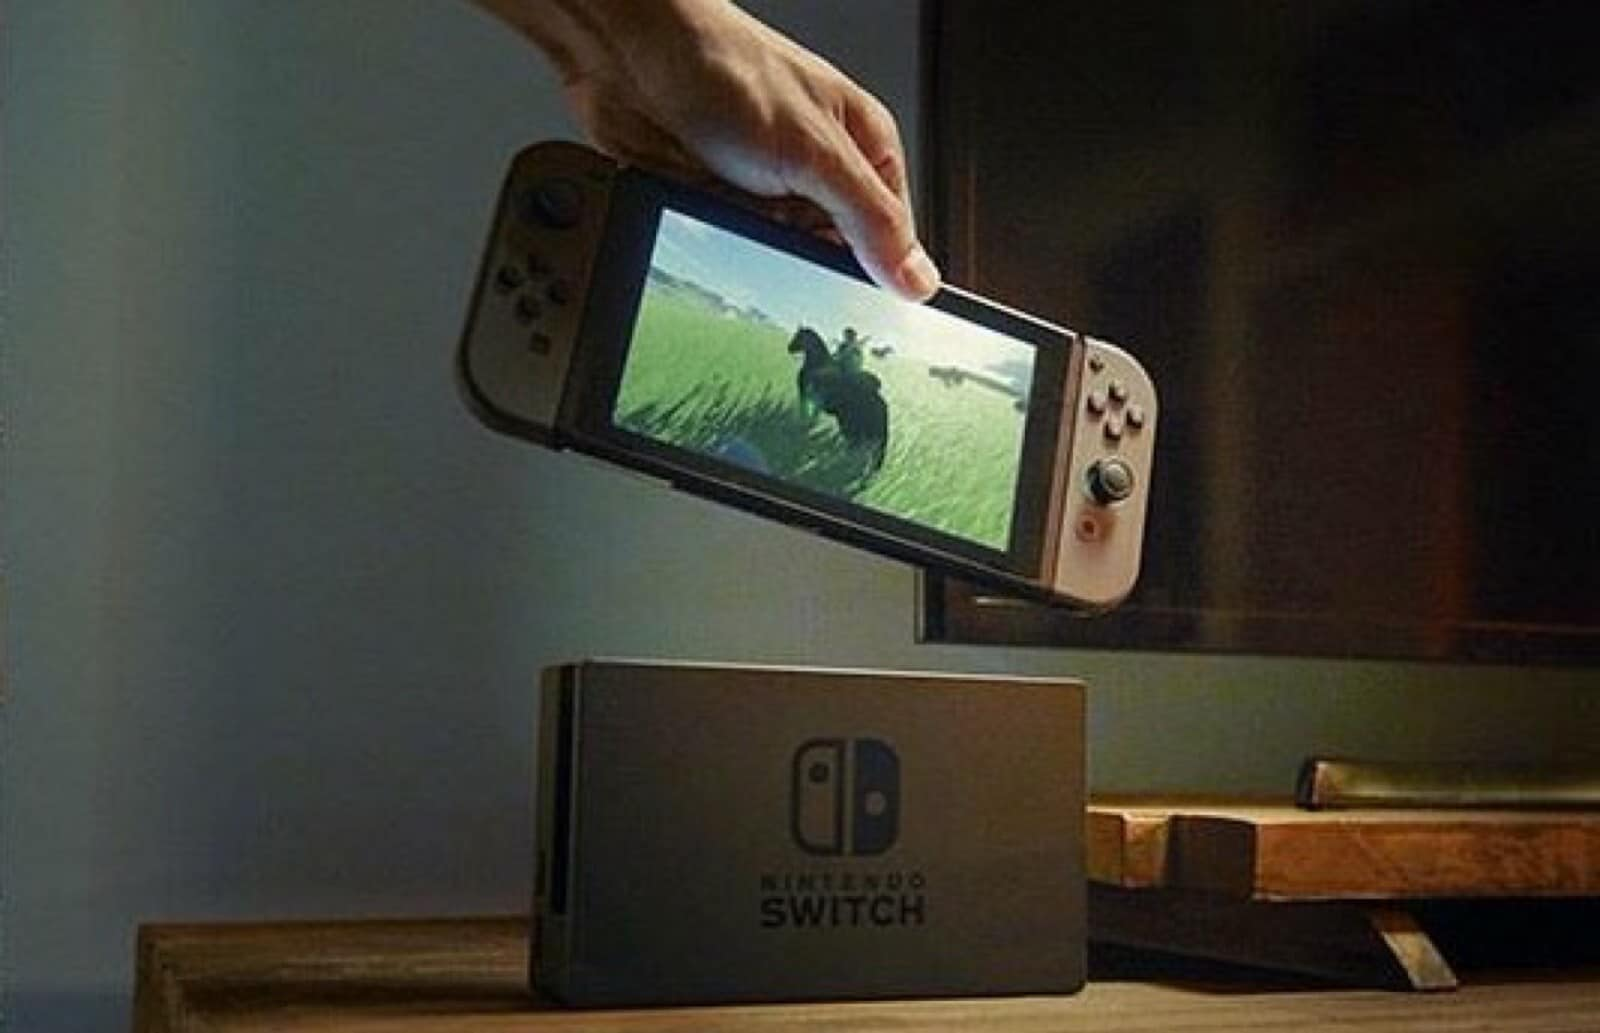 What do you do more; Handheld or Docked?